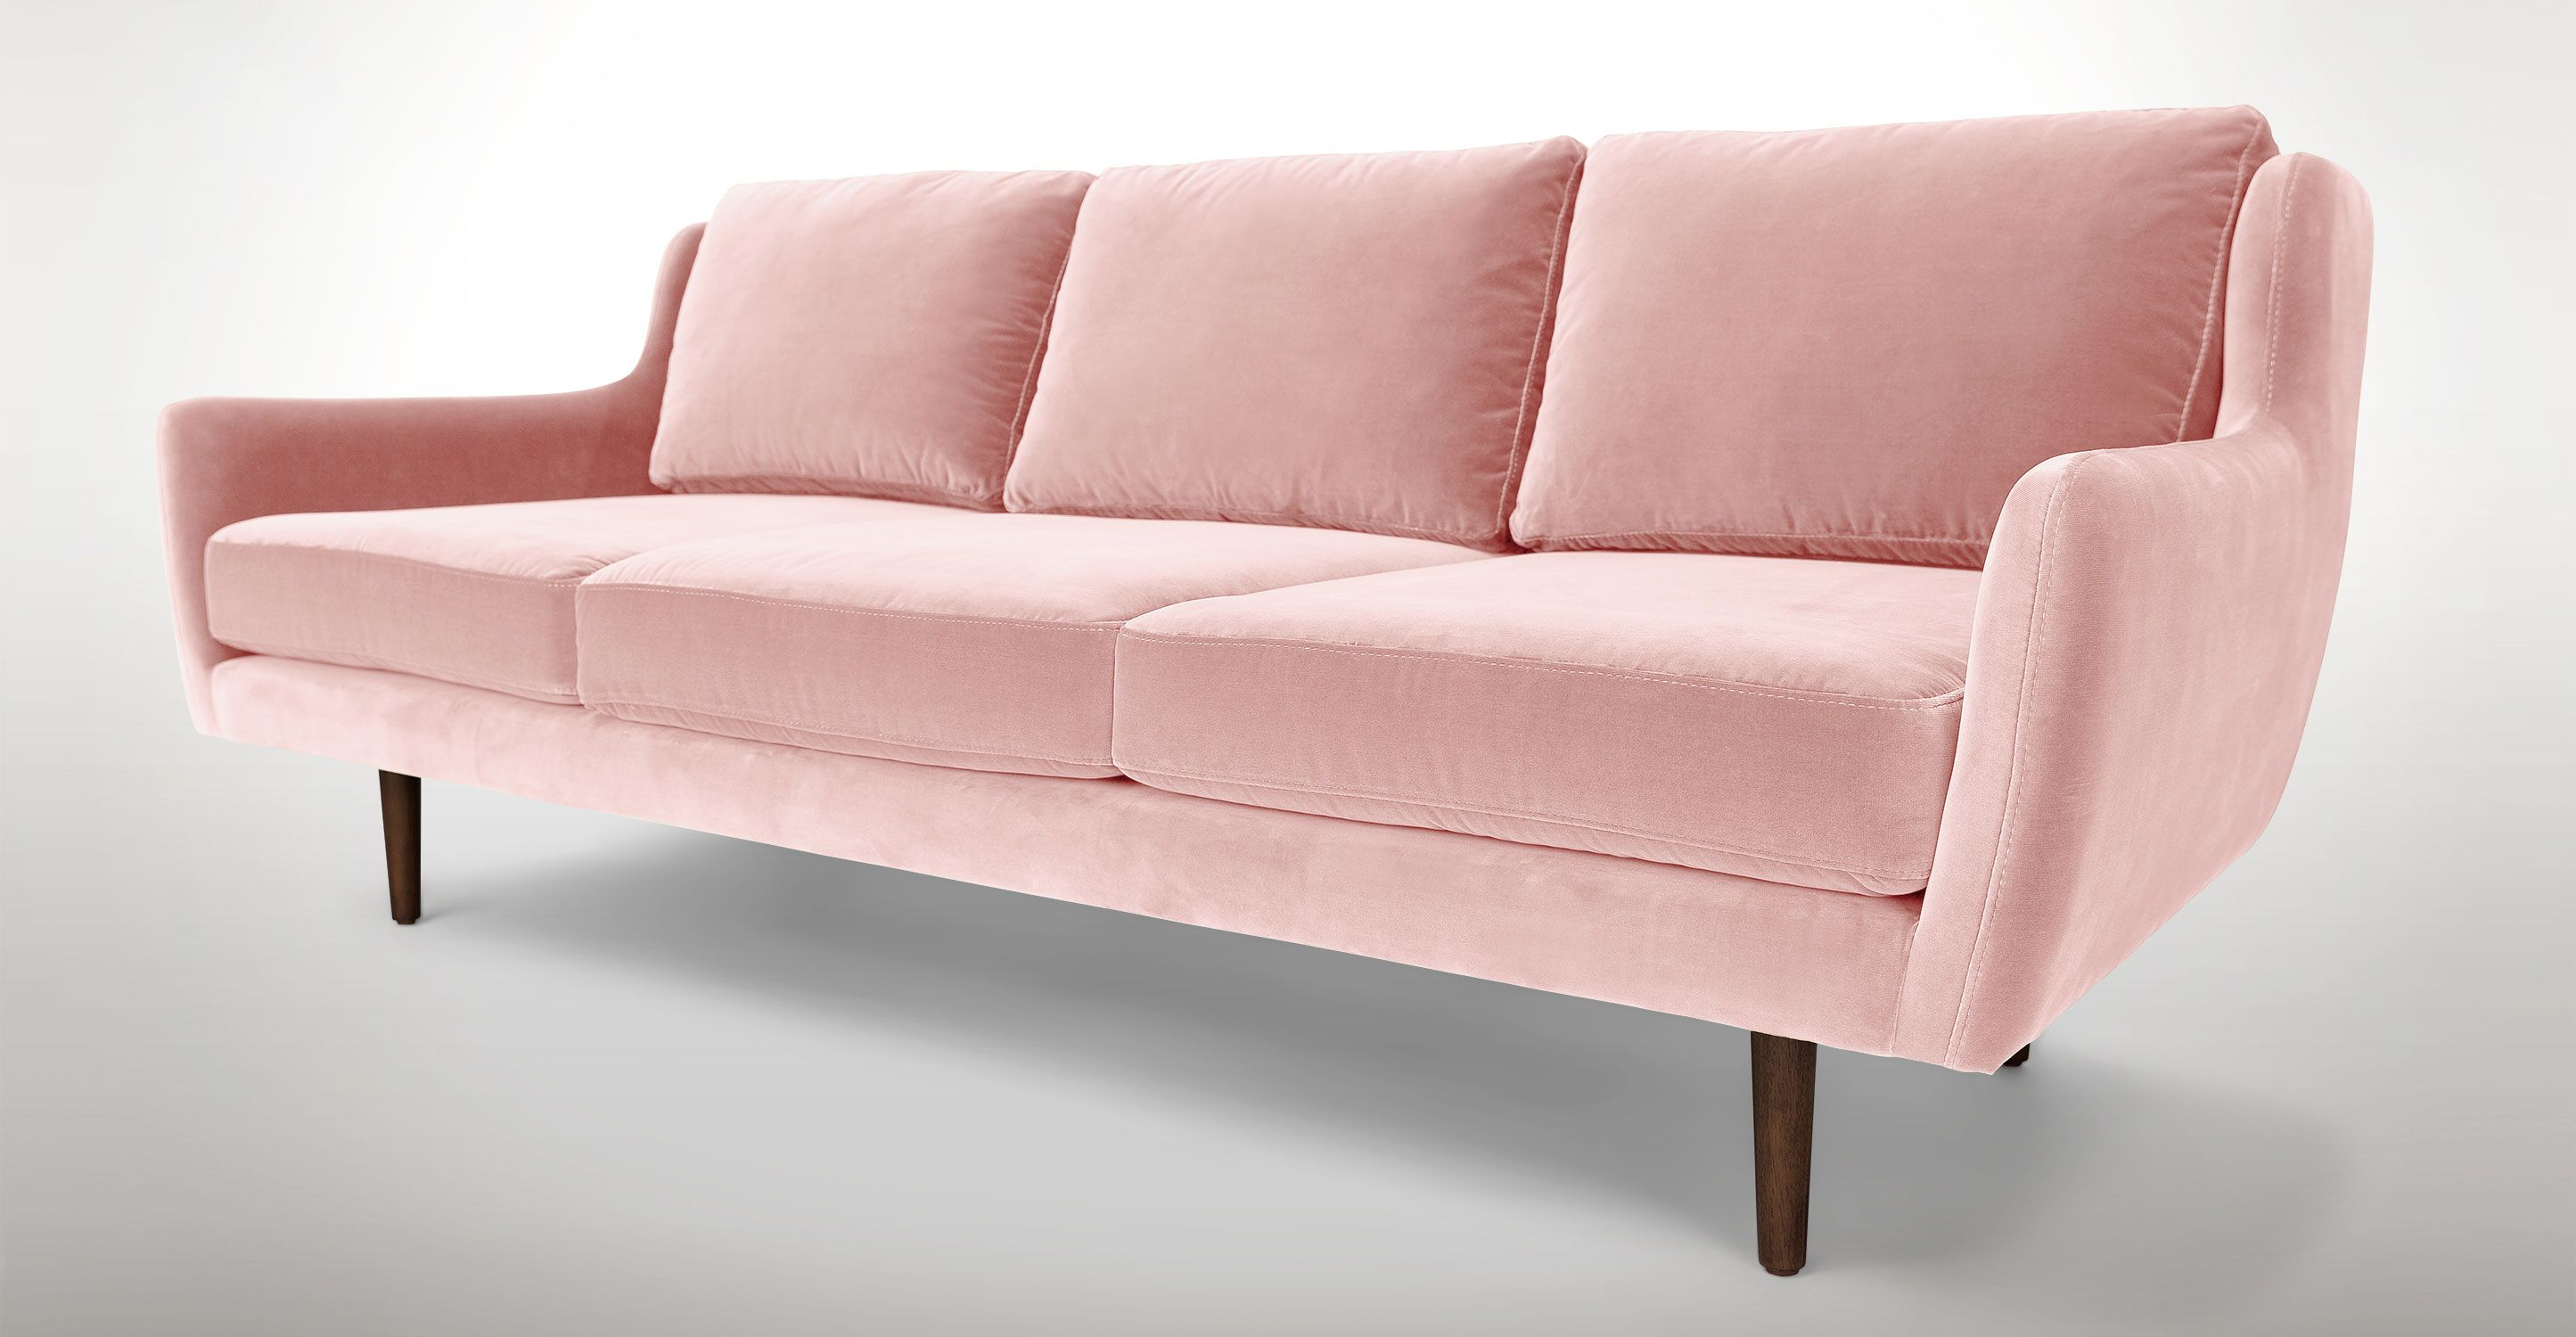 Pink sofa dating agency